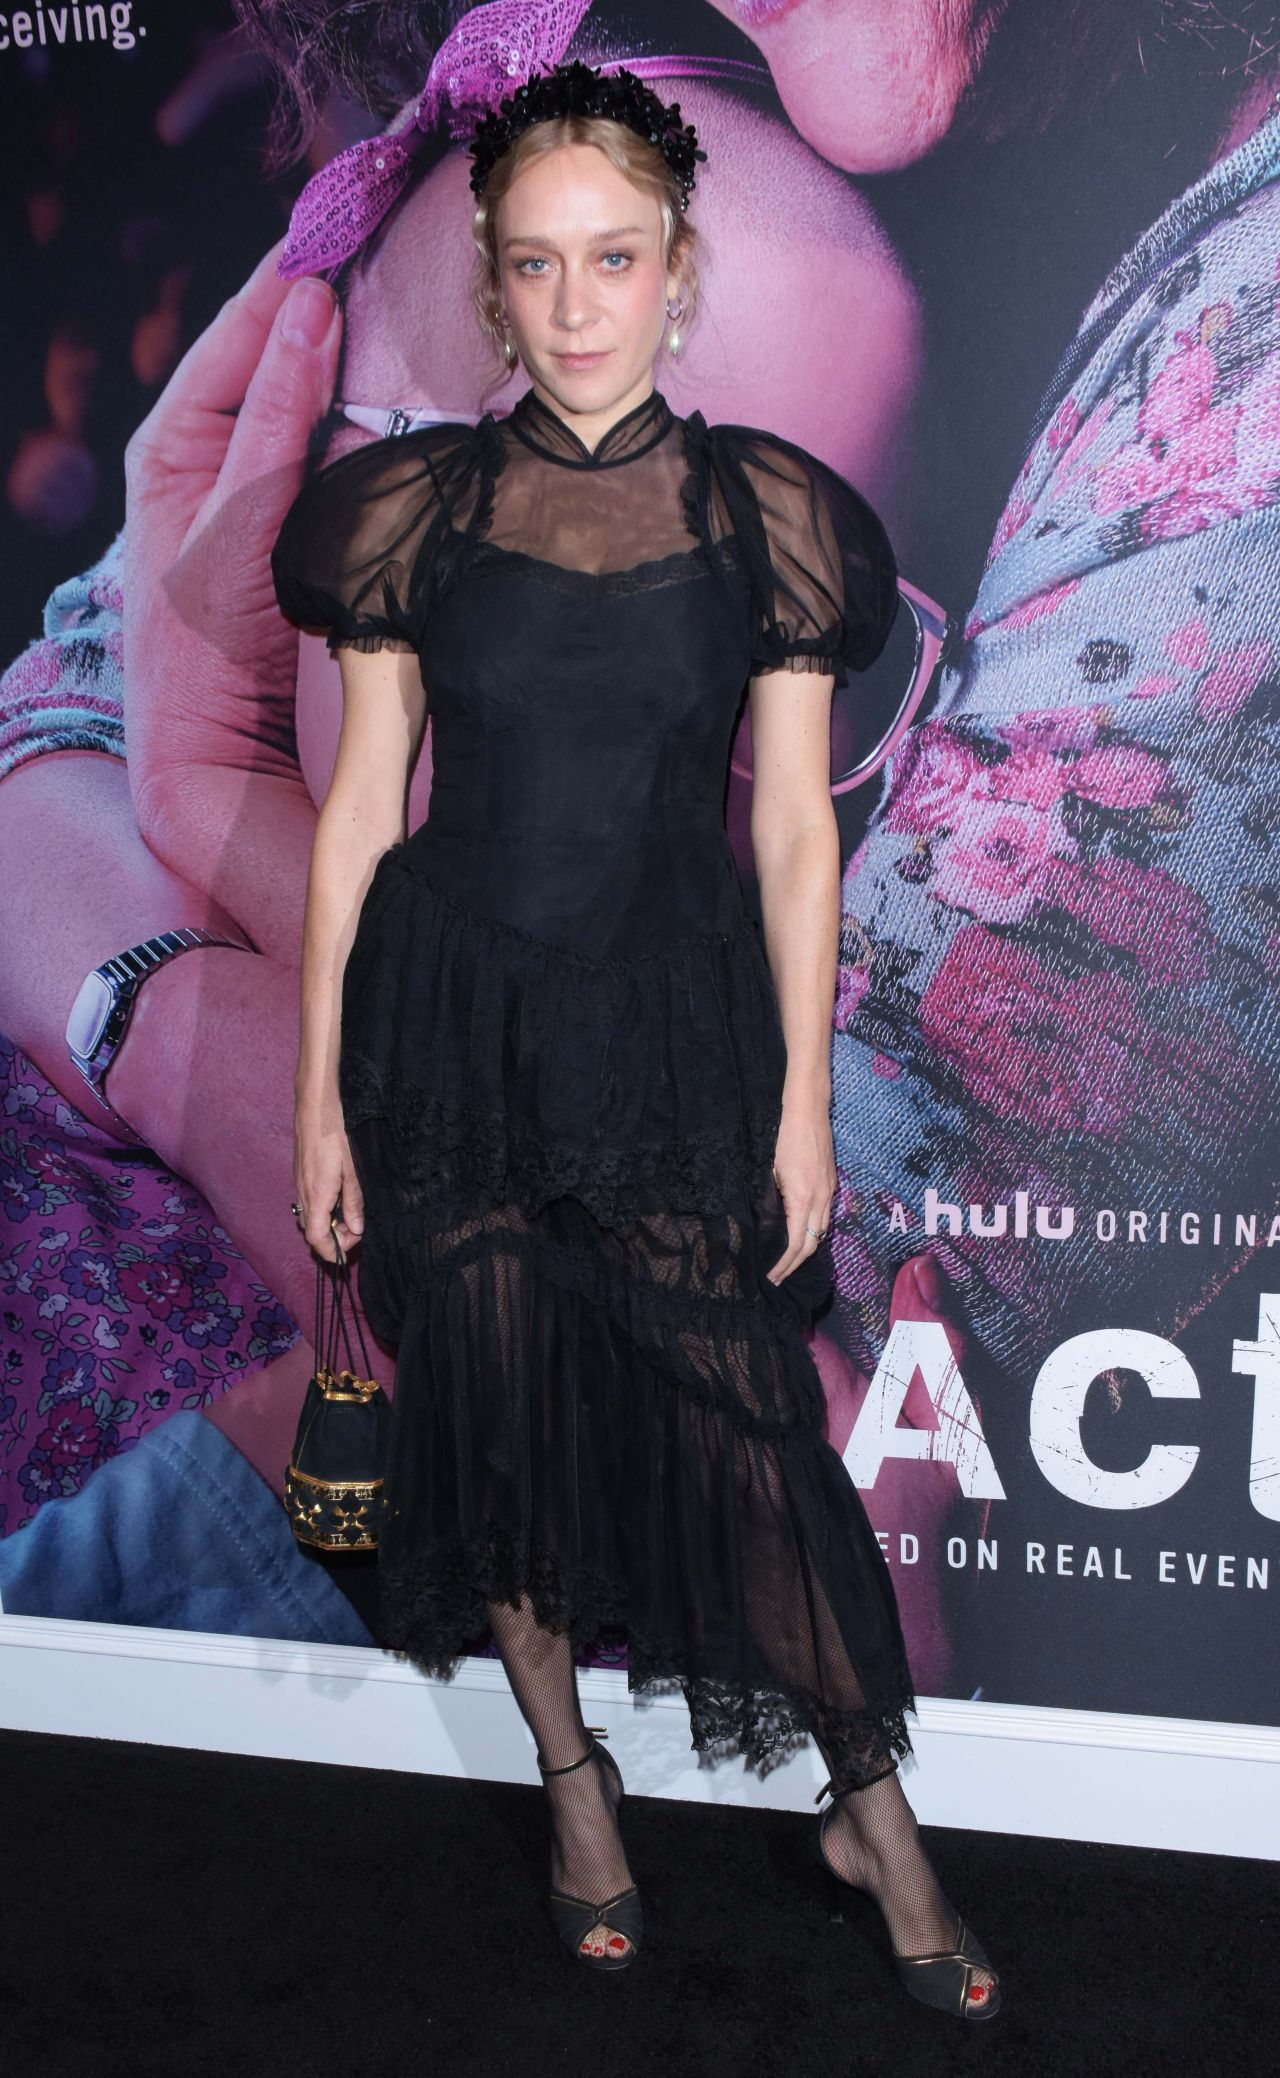 Chloe Sevigny The Act Premiere In New York 03 14 2019